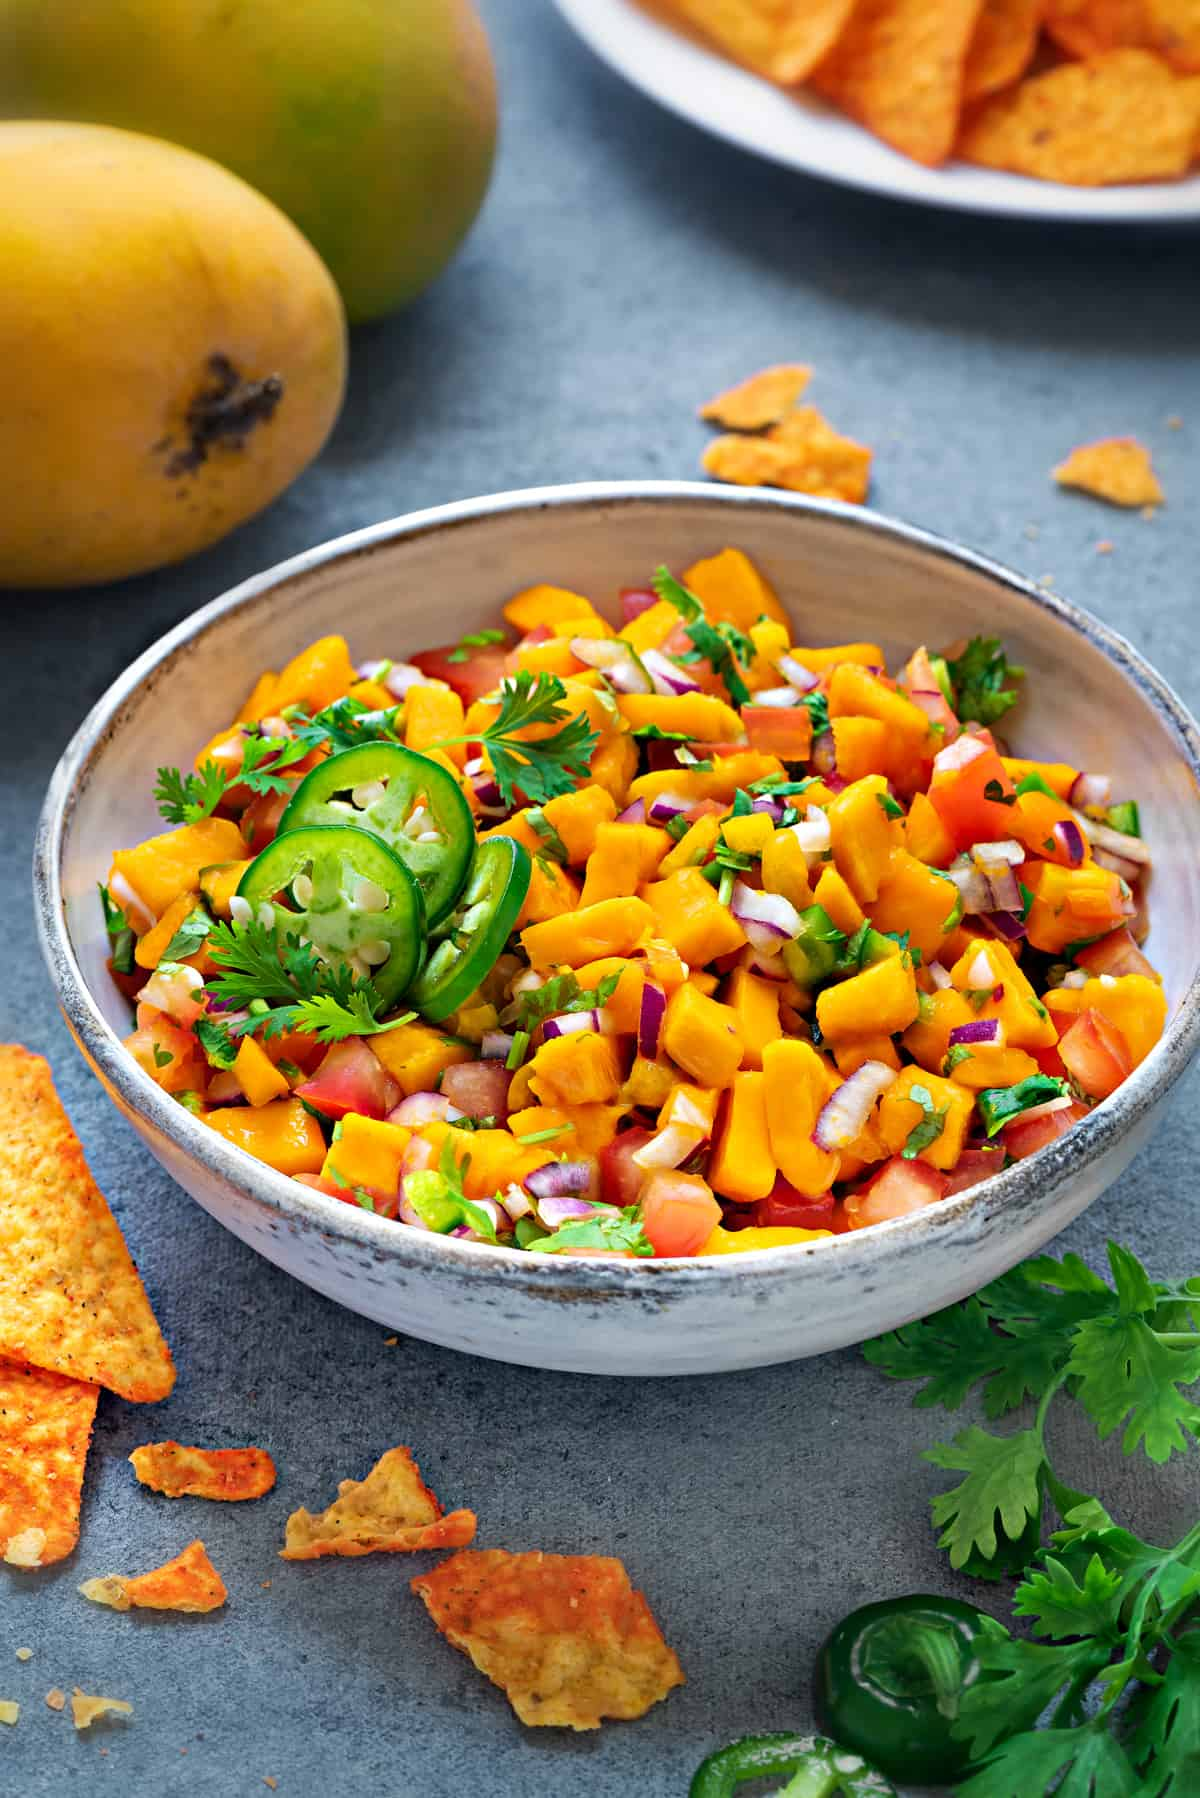 mango salsa in a white earthenware bowl next to a plate of tortilla chips and mangoes